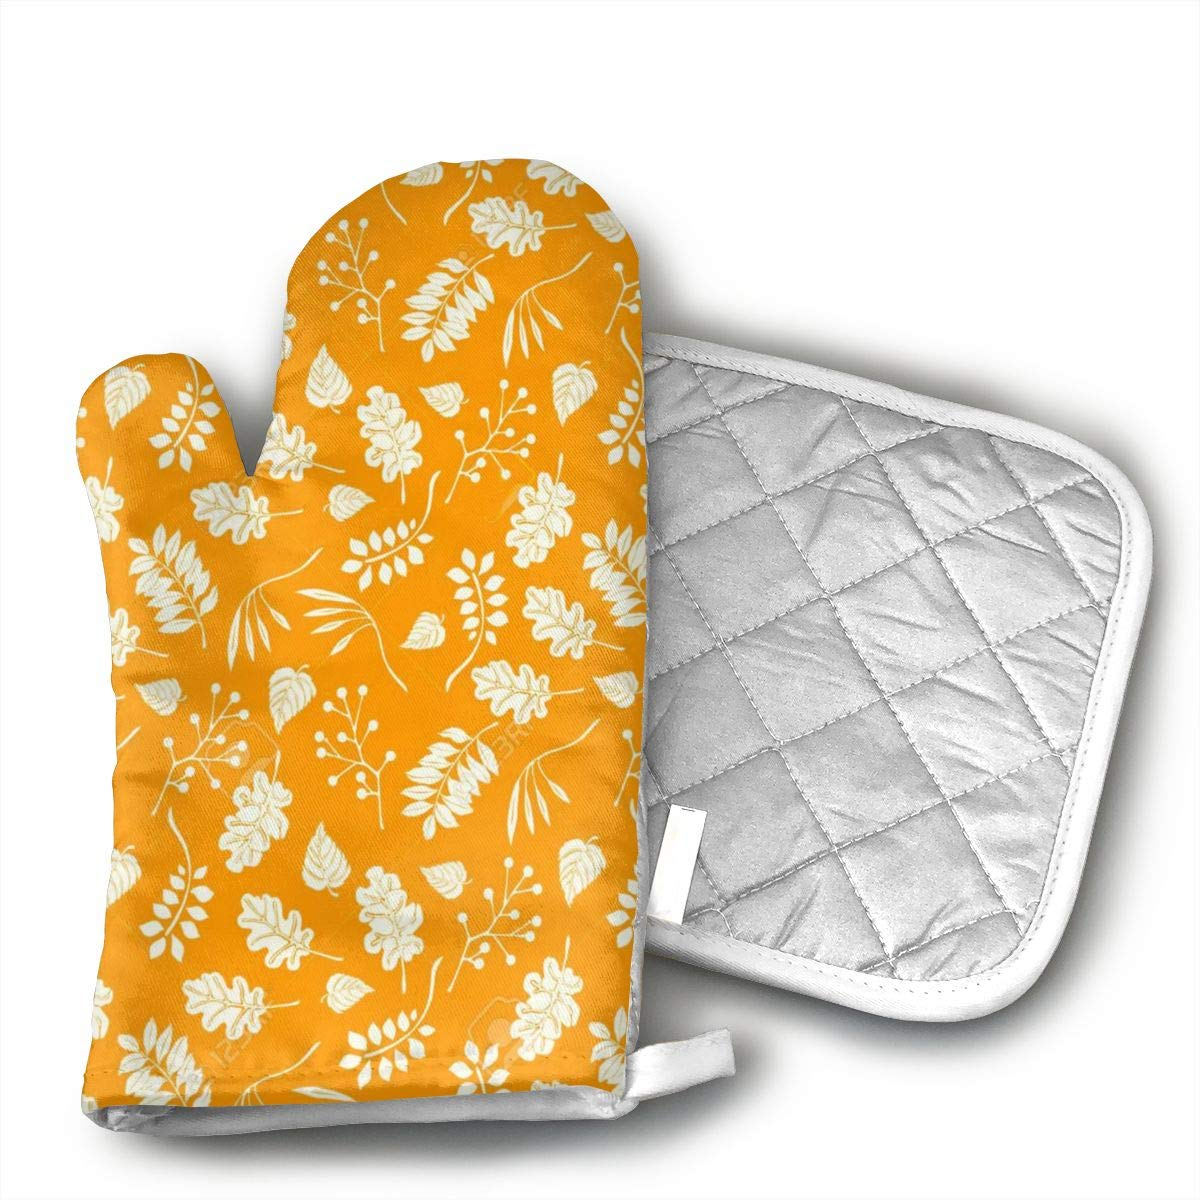 EROJfj Autumnal Sea Oven Mitts and Potholders BBQ Gloves-Oven Mitts and Pot Holders Non-Slip Cooking Gloves for Cooking Baking Grilling